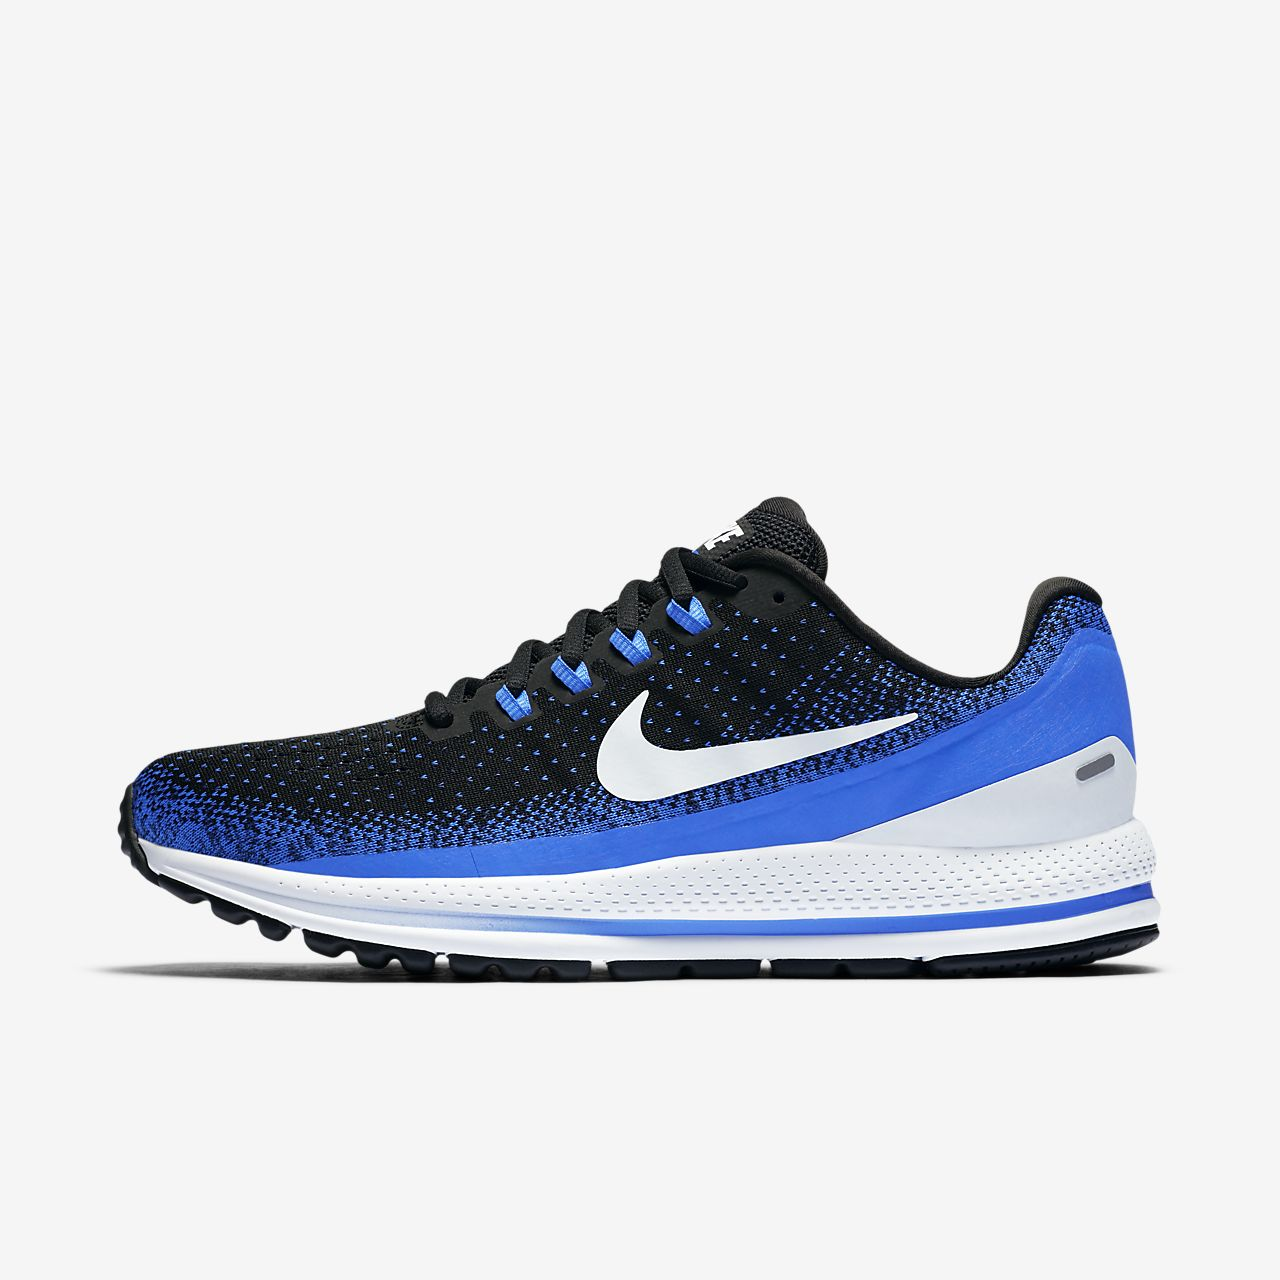 Nike Air Zoom cheap Vomero 13 Black Blue Tint Racer Super Men/Women Running Shoes 922908-002